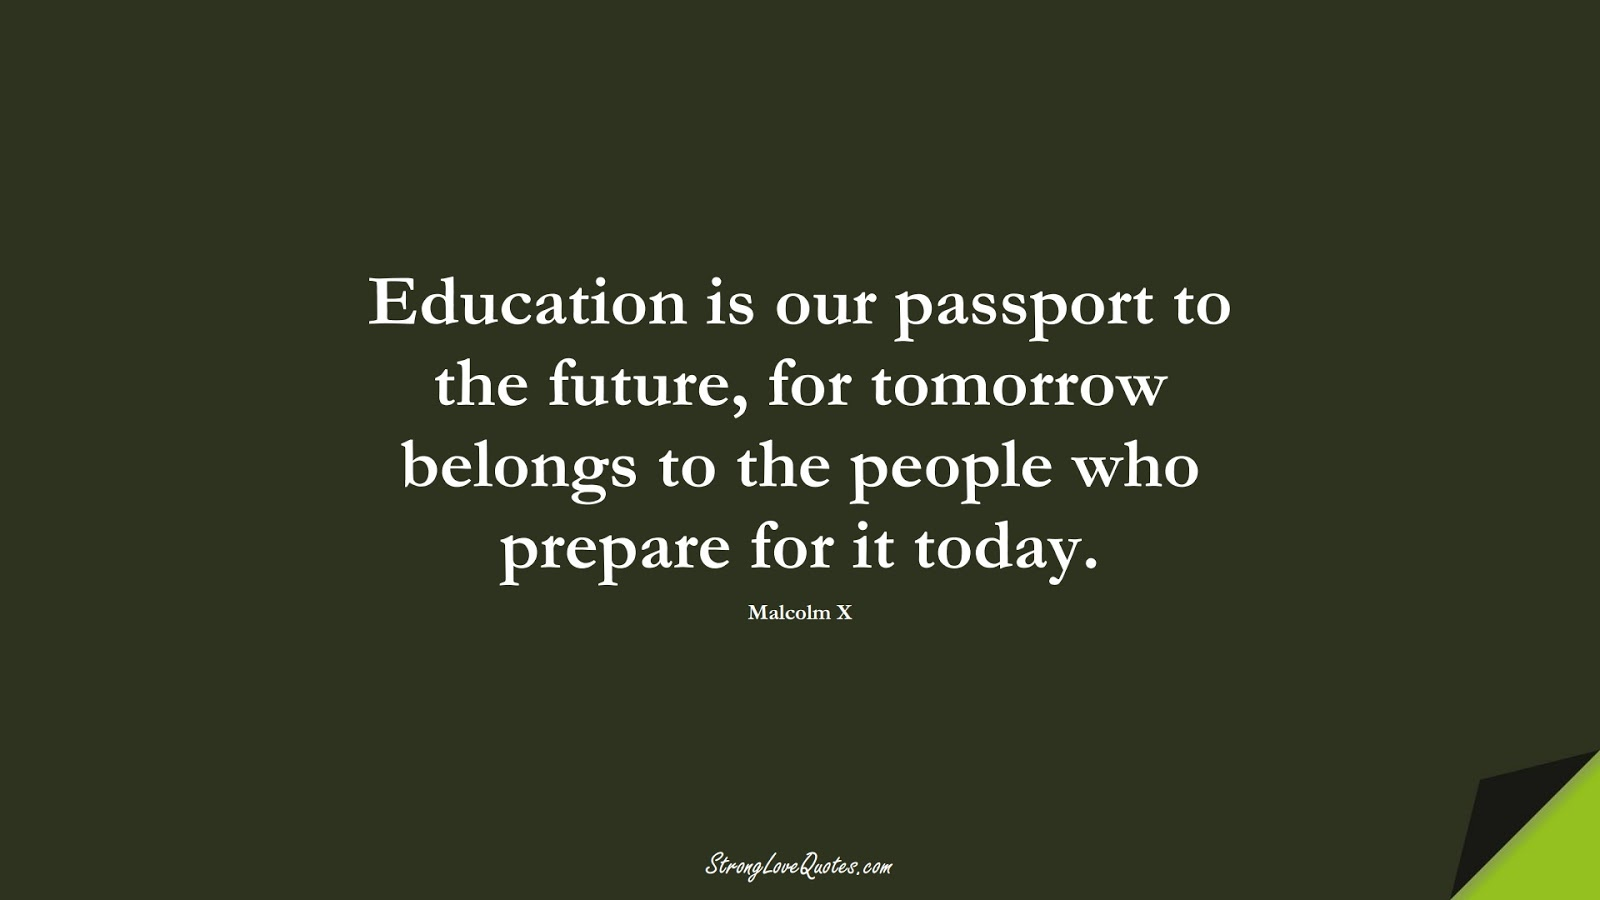 Education is our passport to the future, for tomorrow belongs to the people who prepare for it today. (Malcolm X);  #EducationQuotes